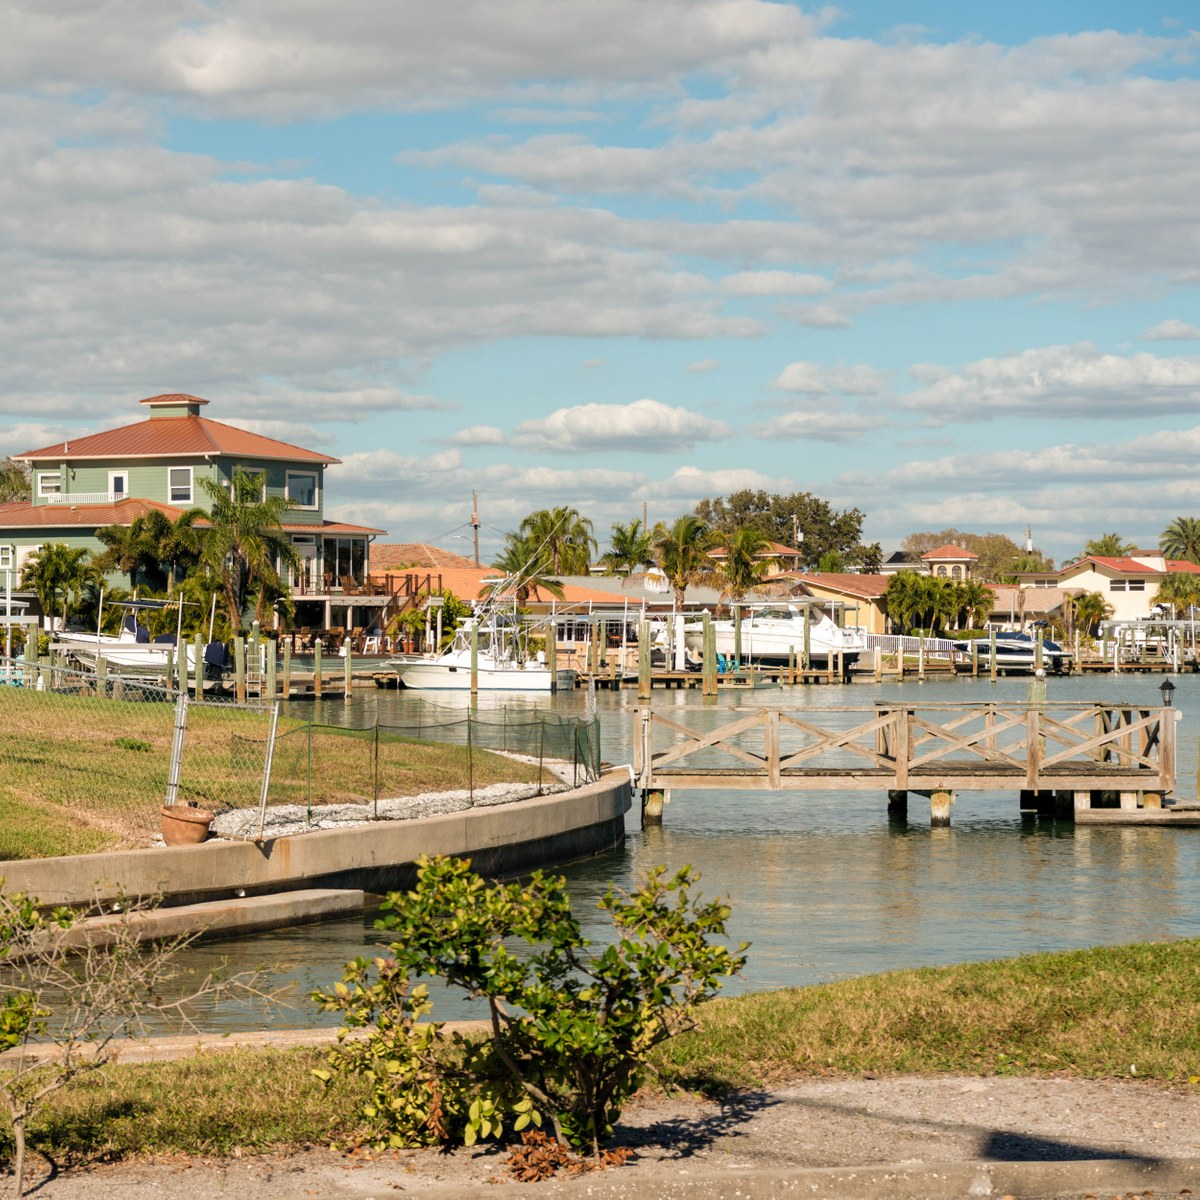 Apartments For Rent In Clearwater Fl: Island Estate Civic Association, Clearwater FL